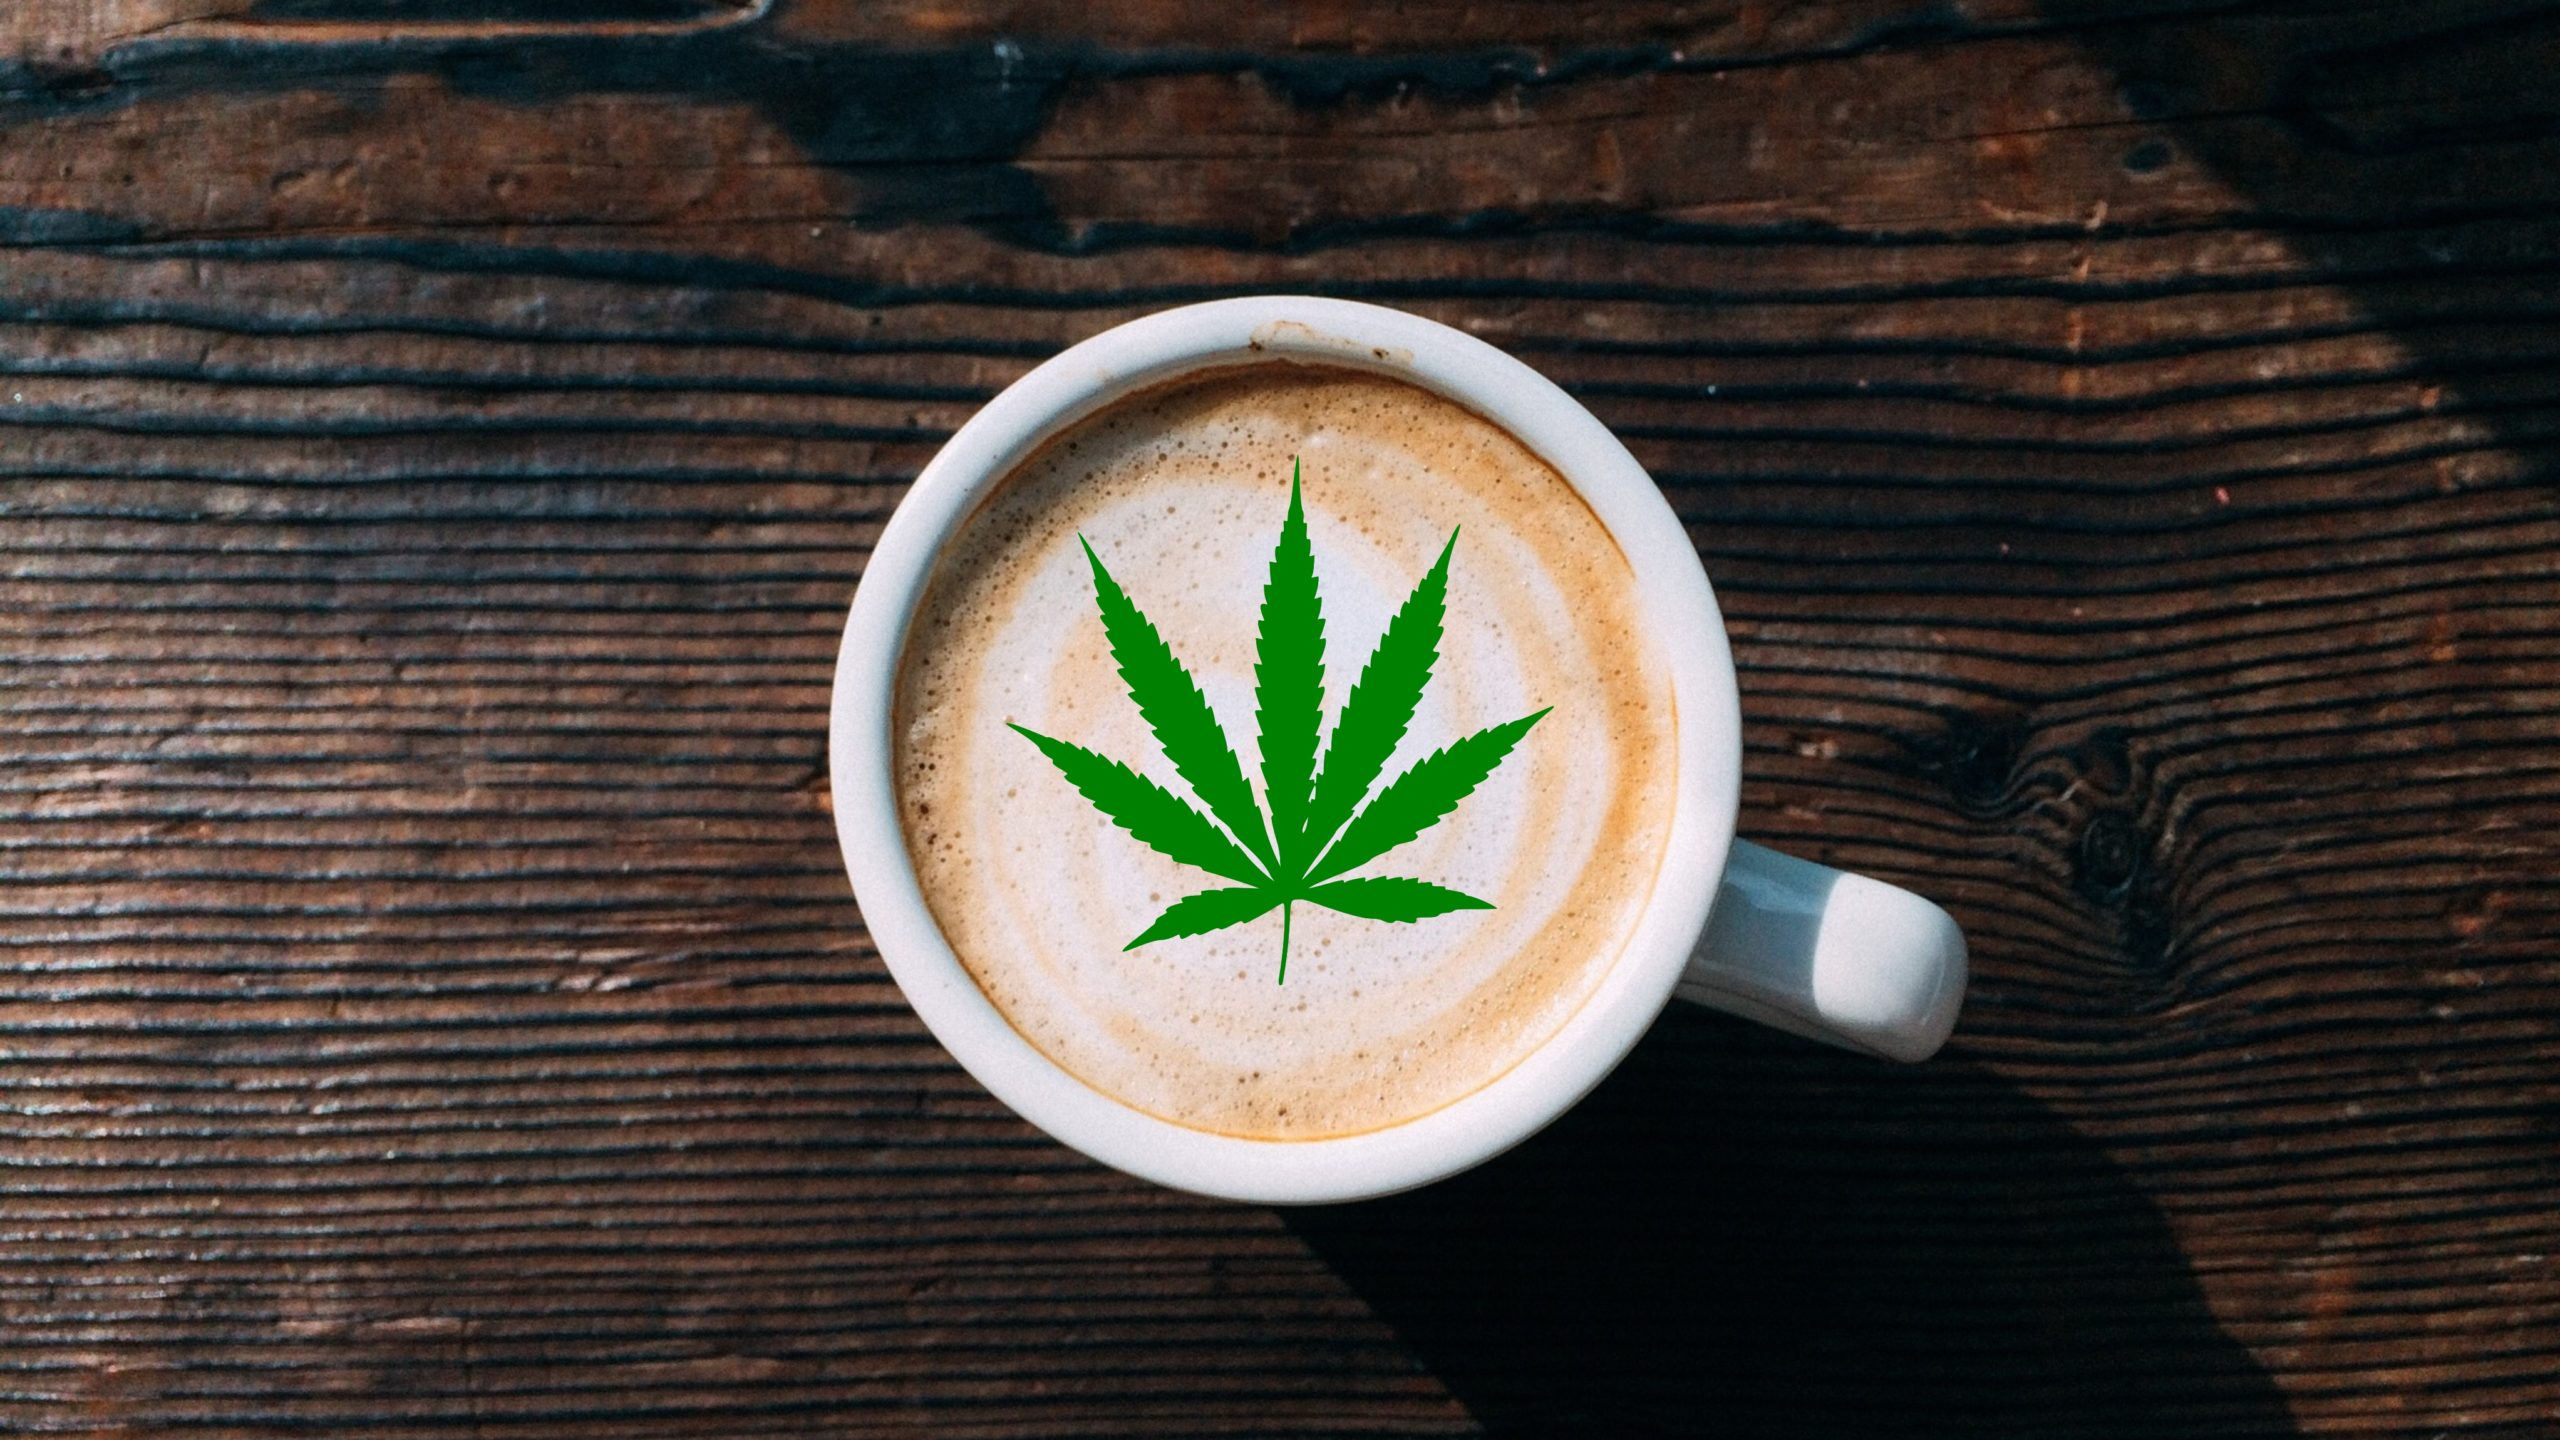 Cannabis Cafés are Beginning to Open Up Across the World